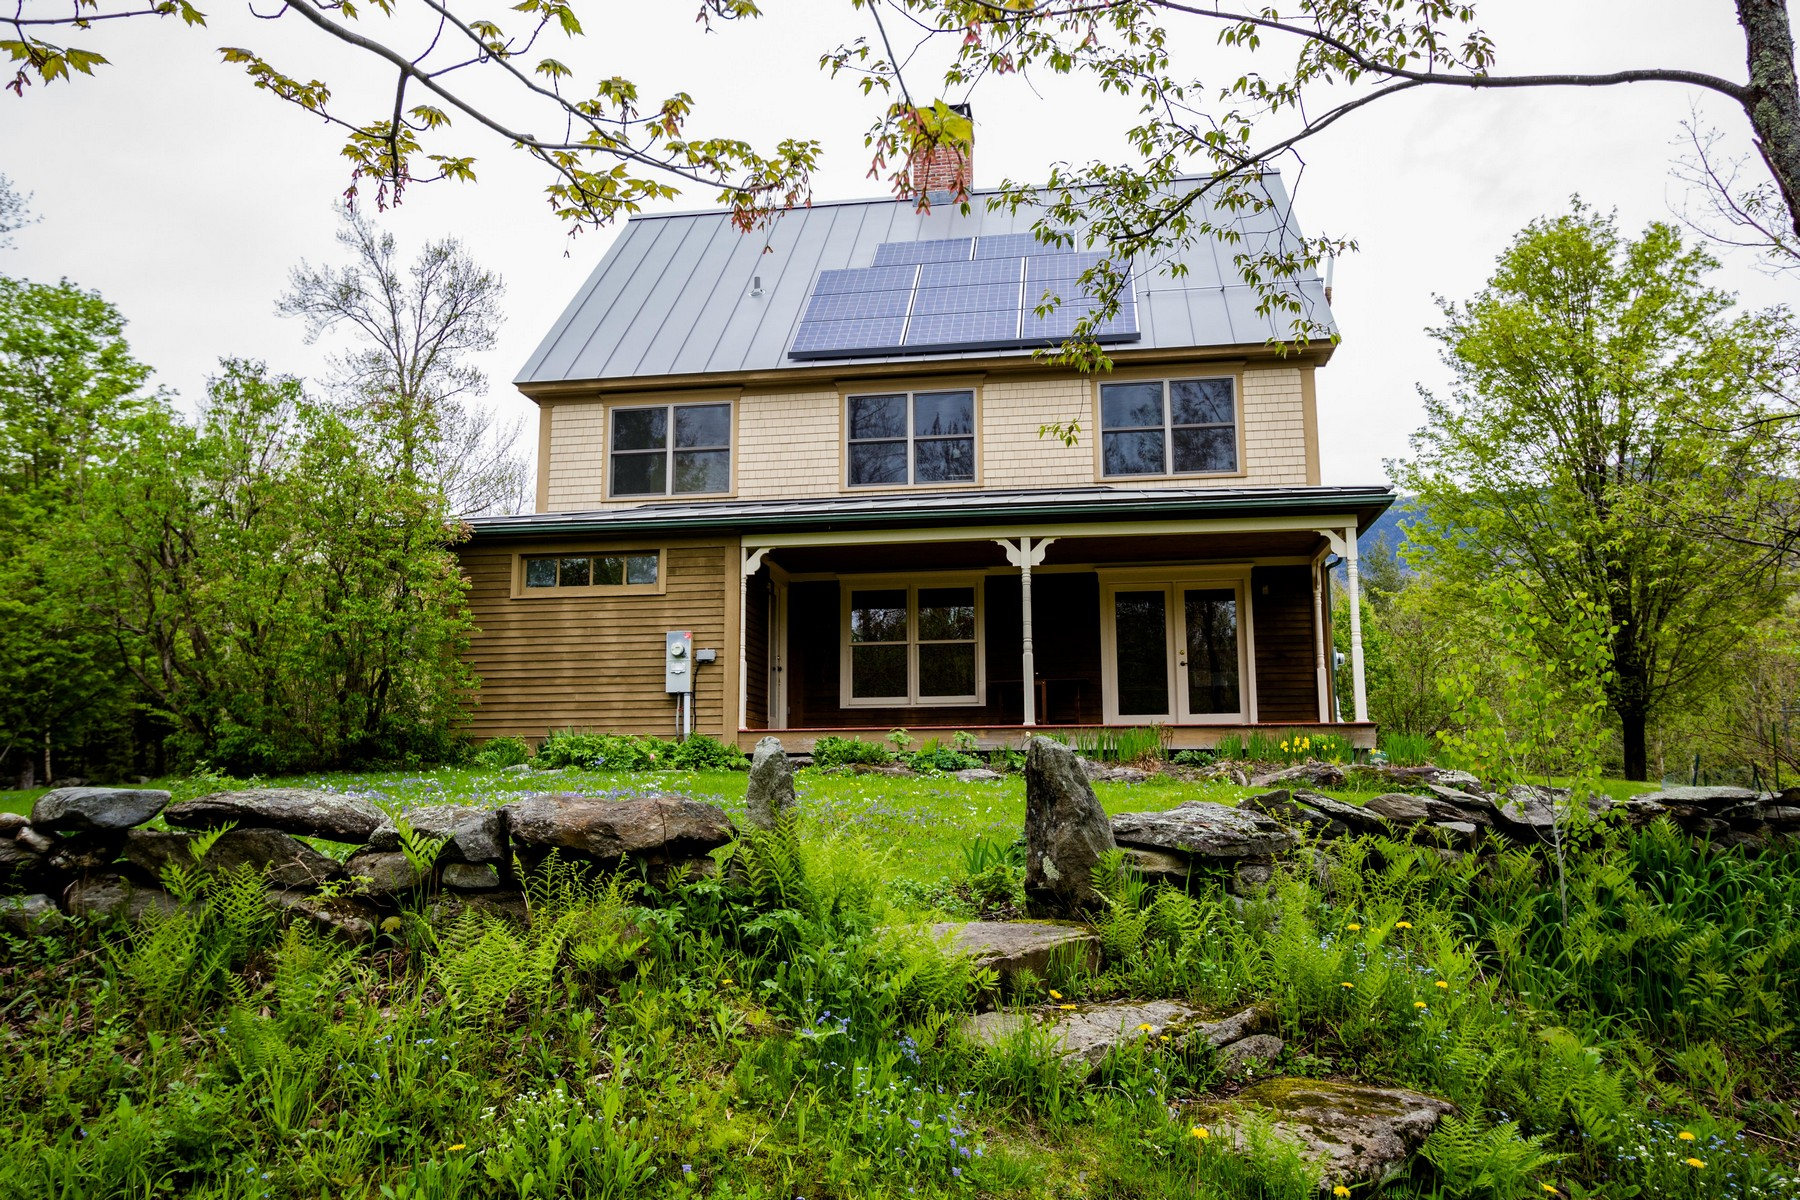 single family homes for Sale at 122 Mountain Road, Underhill 122 Mountain Rd Underhill, Vermont 05489 United States